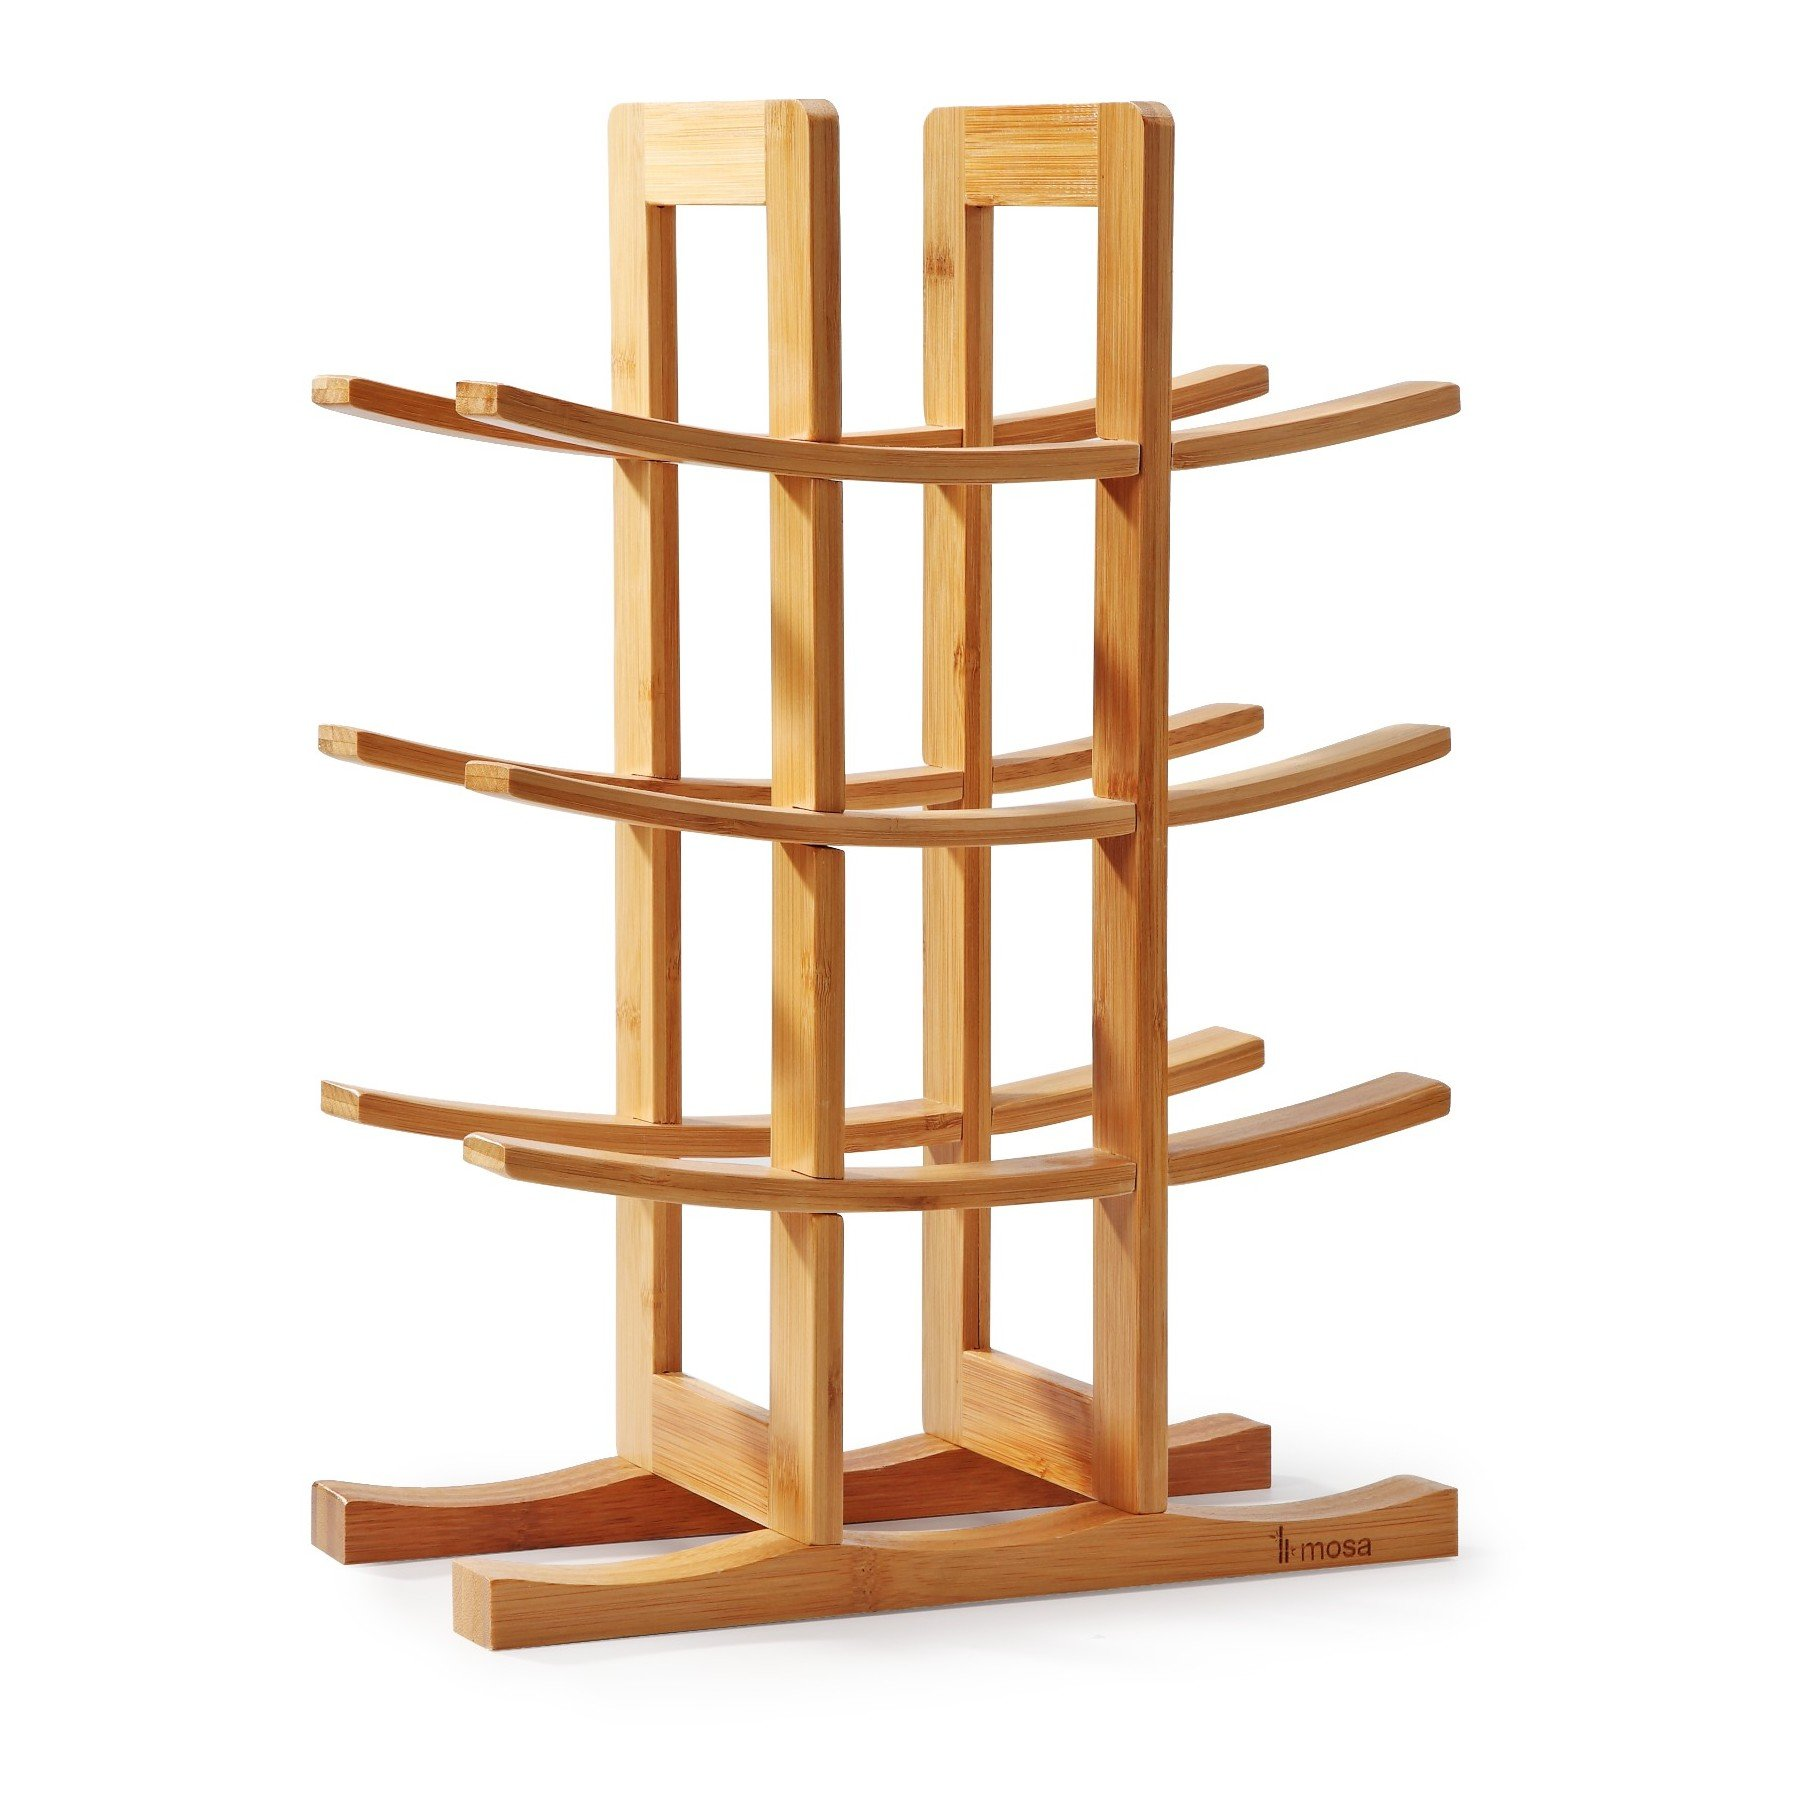 Mosa Natural Bamboo 12 Bottle Wine Rack (11.8'' X 5.7'' X 16.3''), Wood Wine Rack Countertop Wooden Wine Accessories